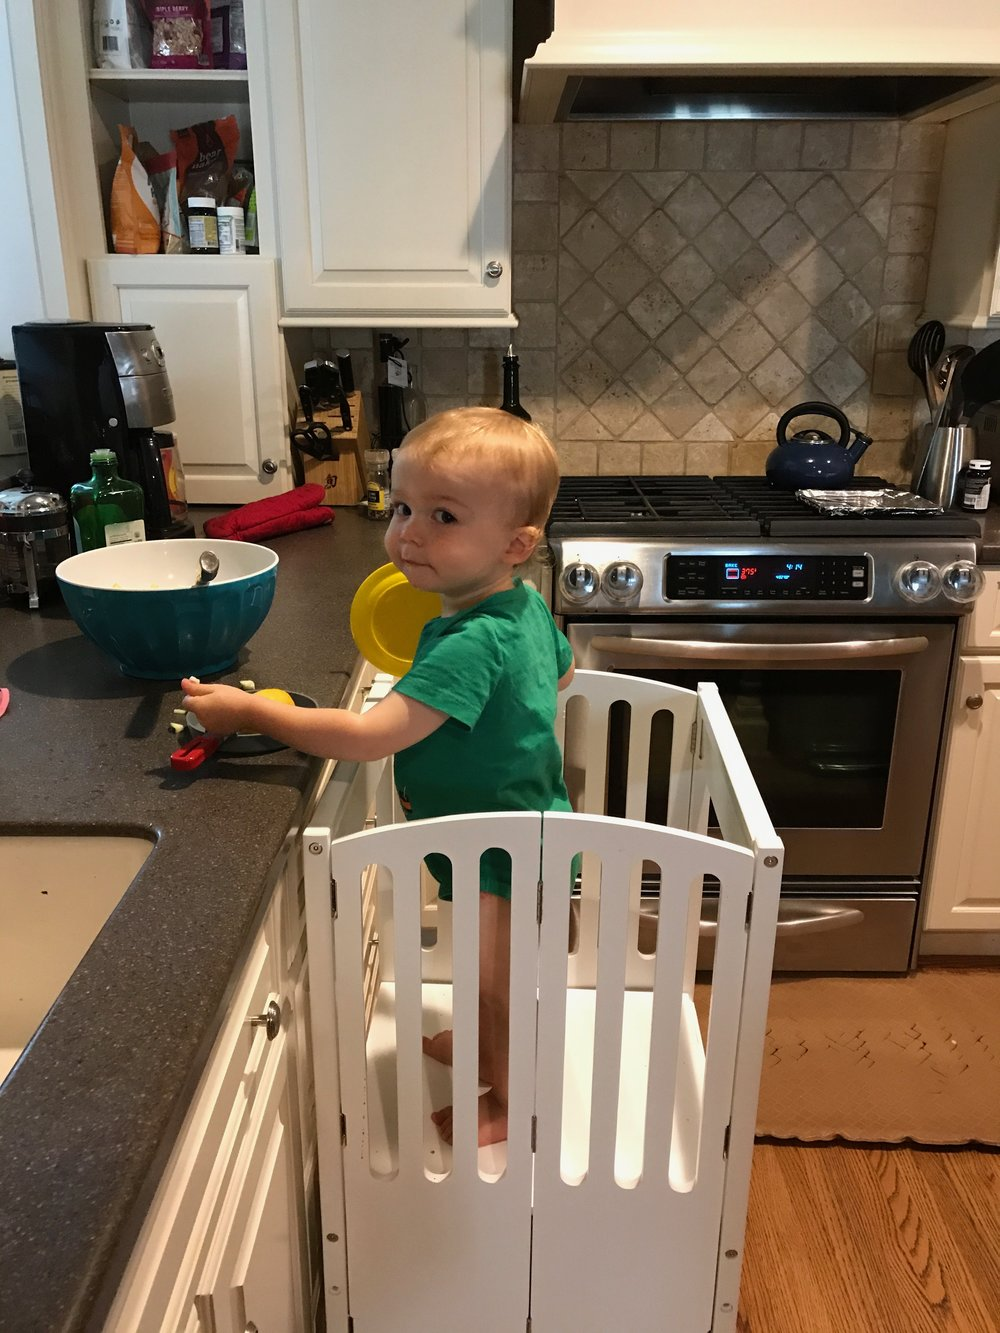 This is a blog post about my one-year-old wielding a deadly weapon, and no, I don't have any photographic evidence. This is a picture of the same toddler on the same stool holding a spoon. Use your imagination.